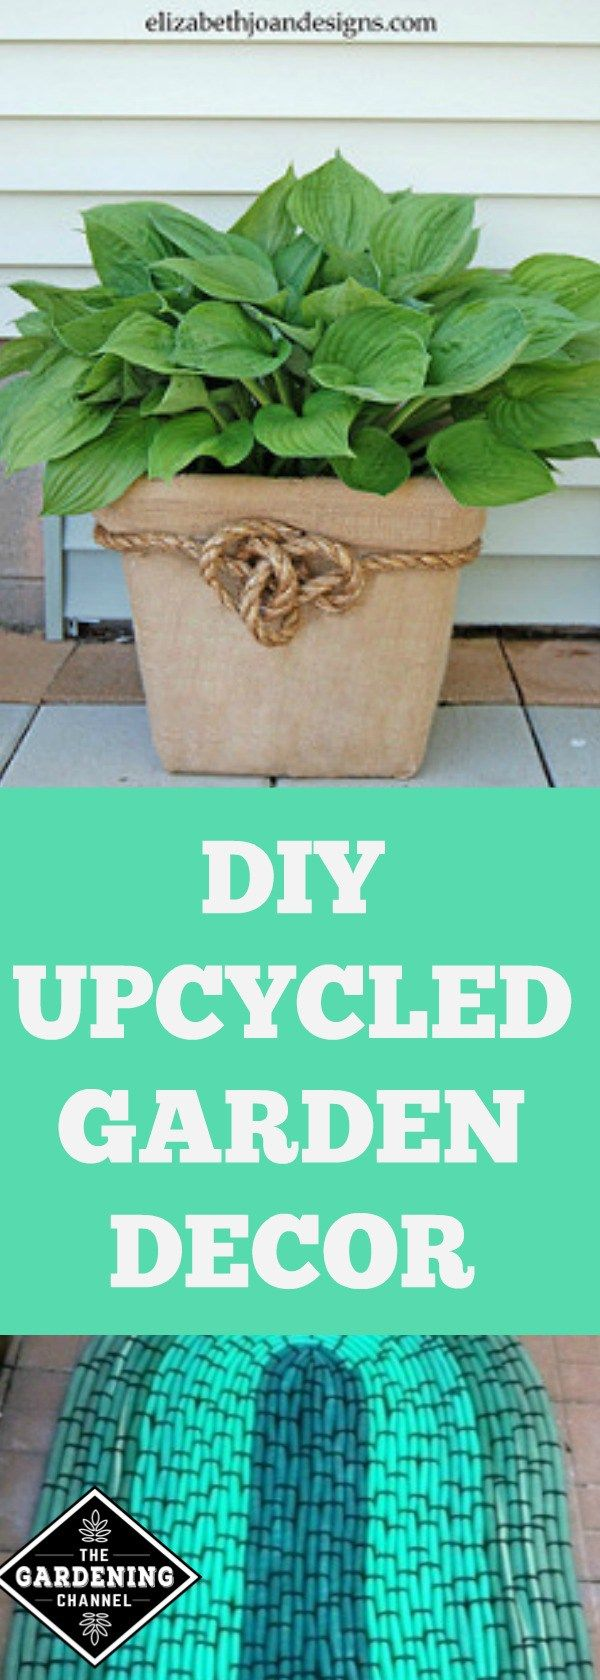 Seven Unusual Upcycled Garden Decorations   Gardens, Upcycled garden ...